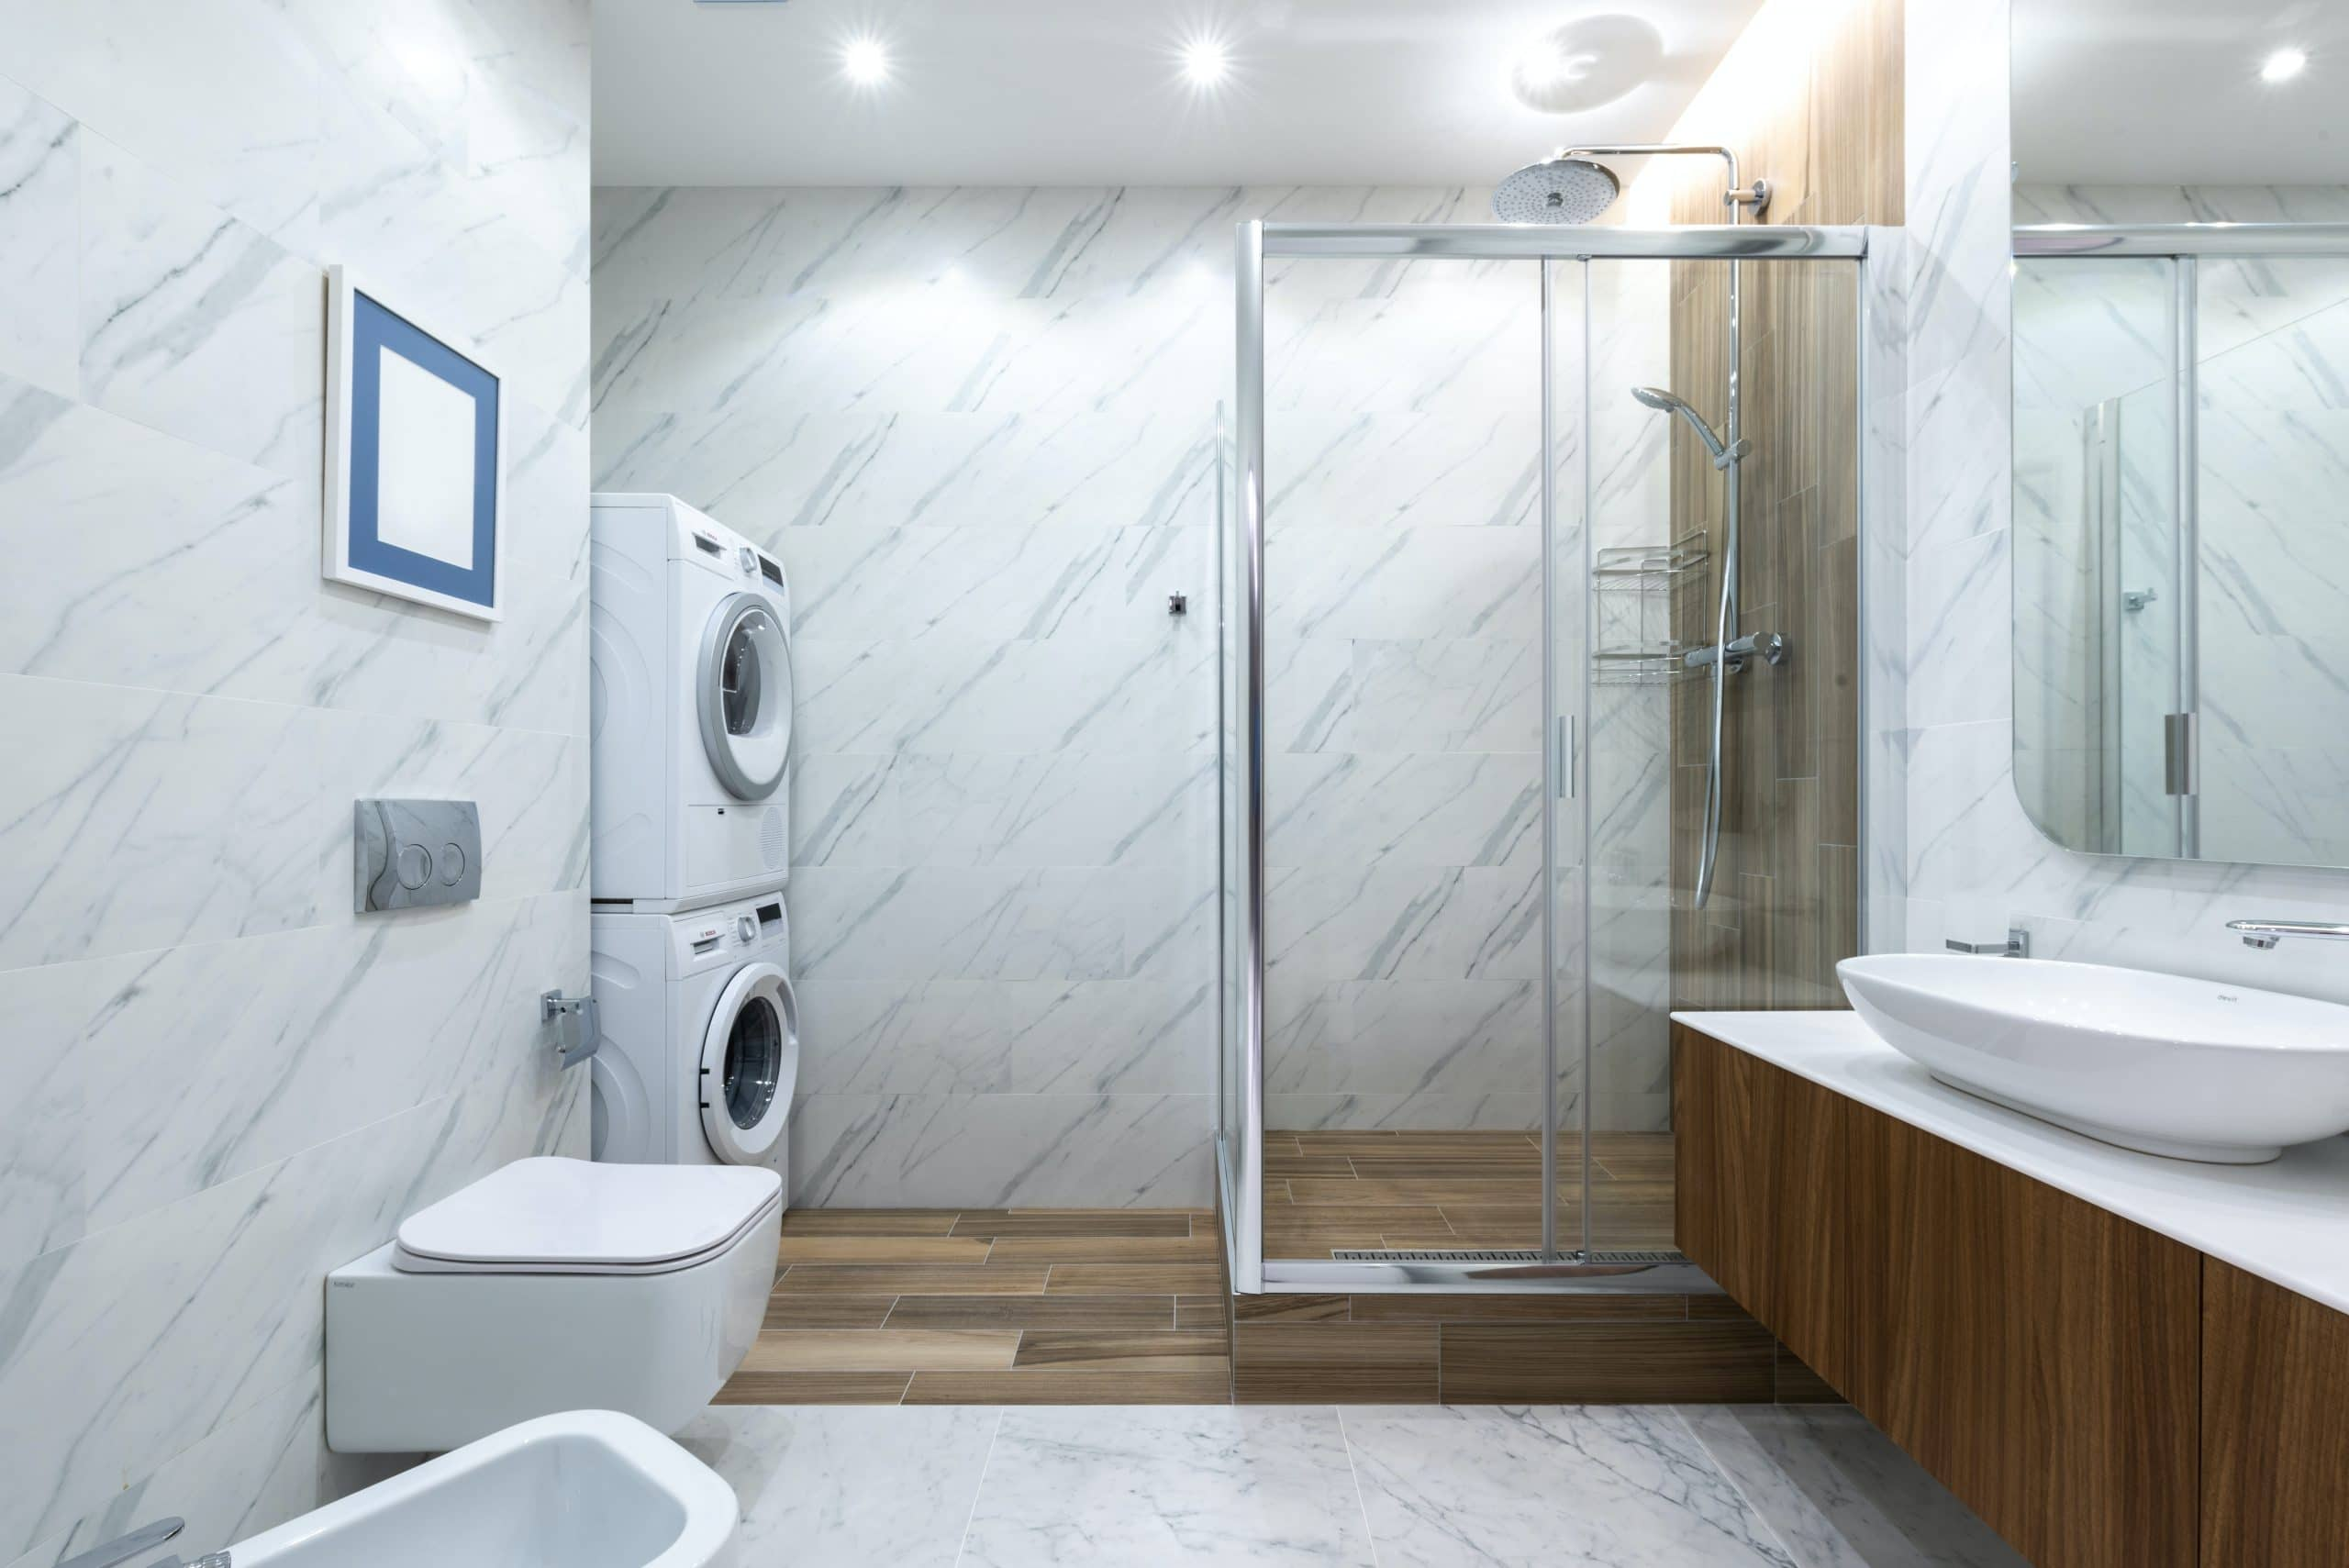 Contemporary bathroom toilet near tiled wall against cabinet with sink placed near shower cabin with glass wall and washing machines